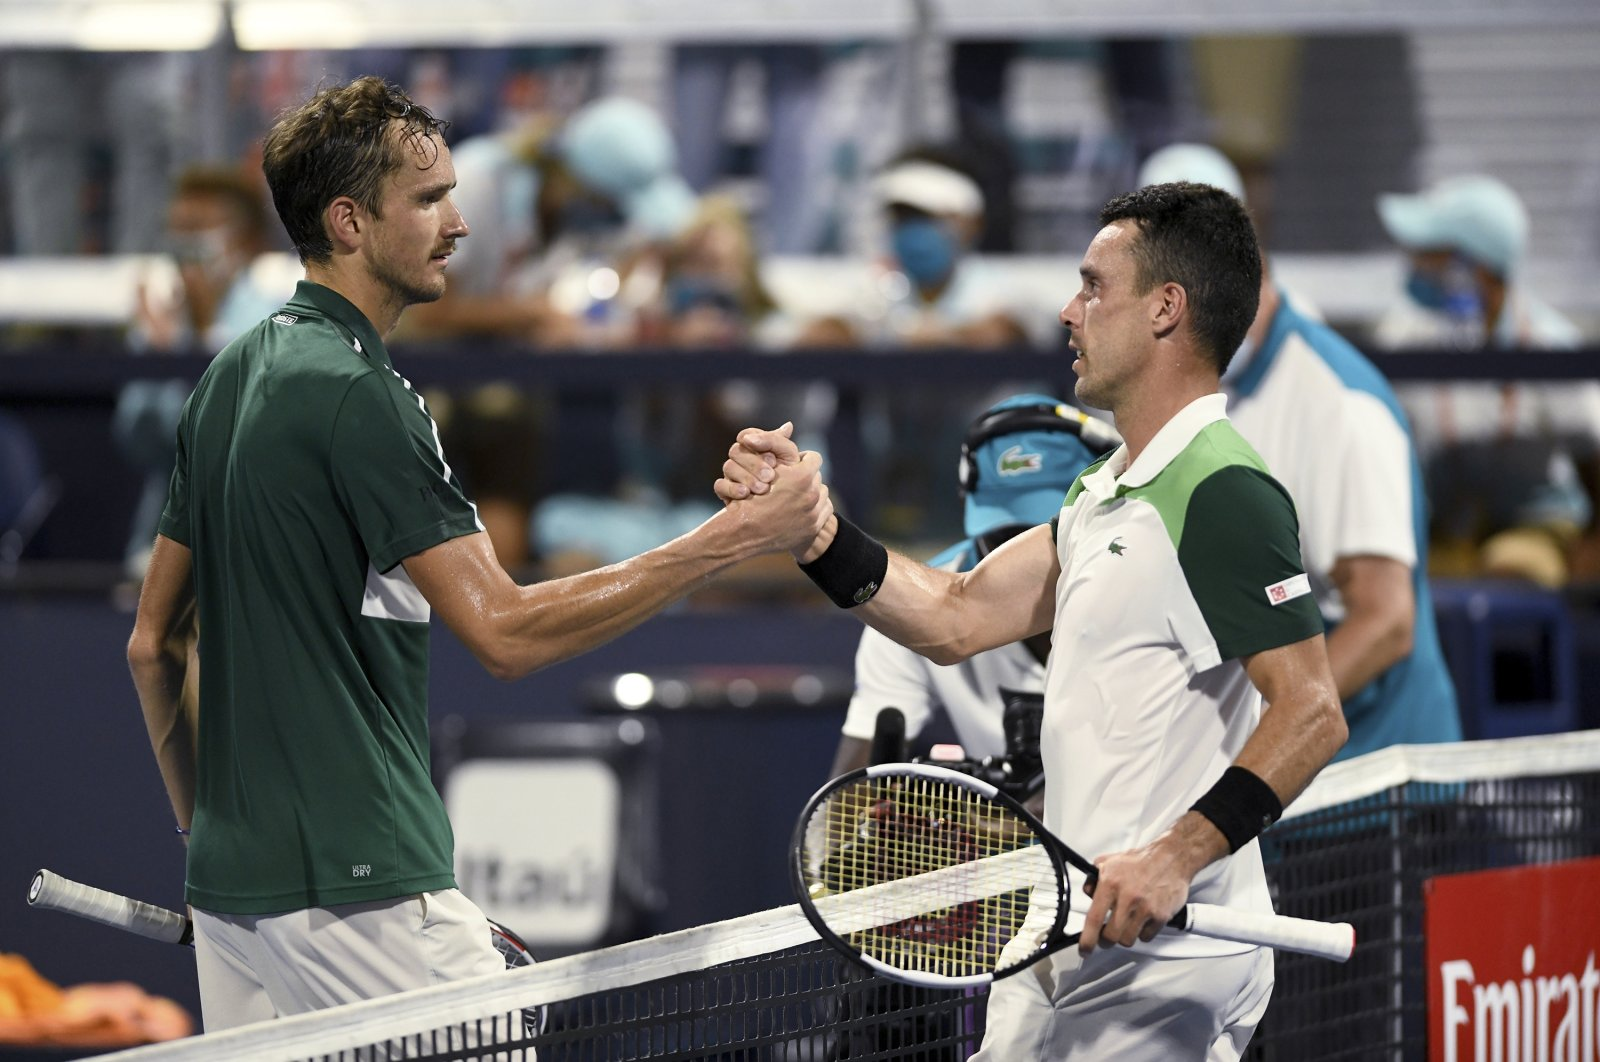 Russia's Daniil Medvedev (L) shakes hands with Spain's Roberto Bautista Agut after a 6-4, 6-2 loss at the Miami Open tennis tournament, in Miami, U.S., March 31, 2021. (AP Photo)